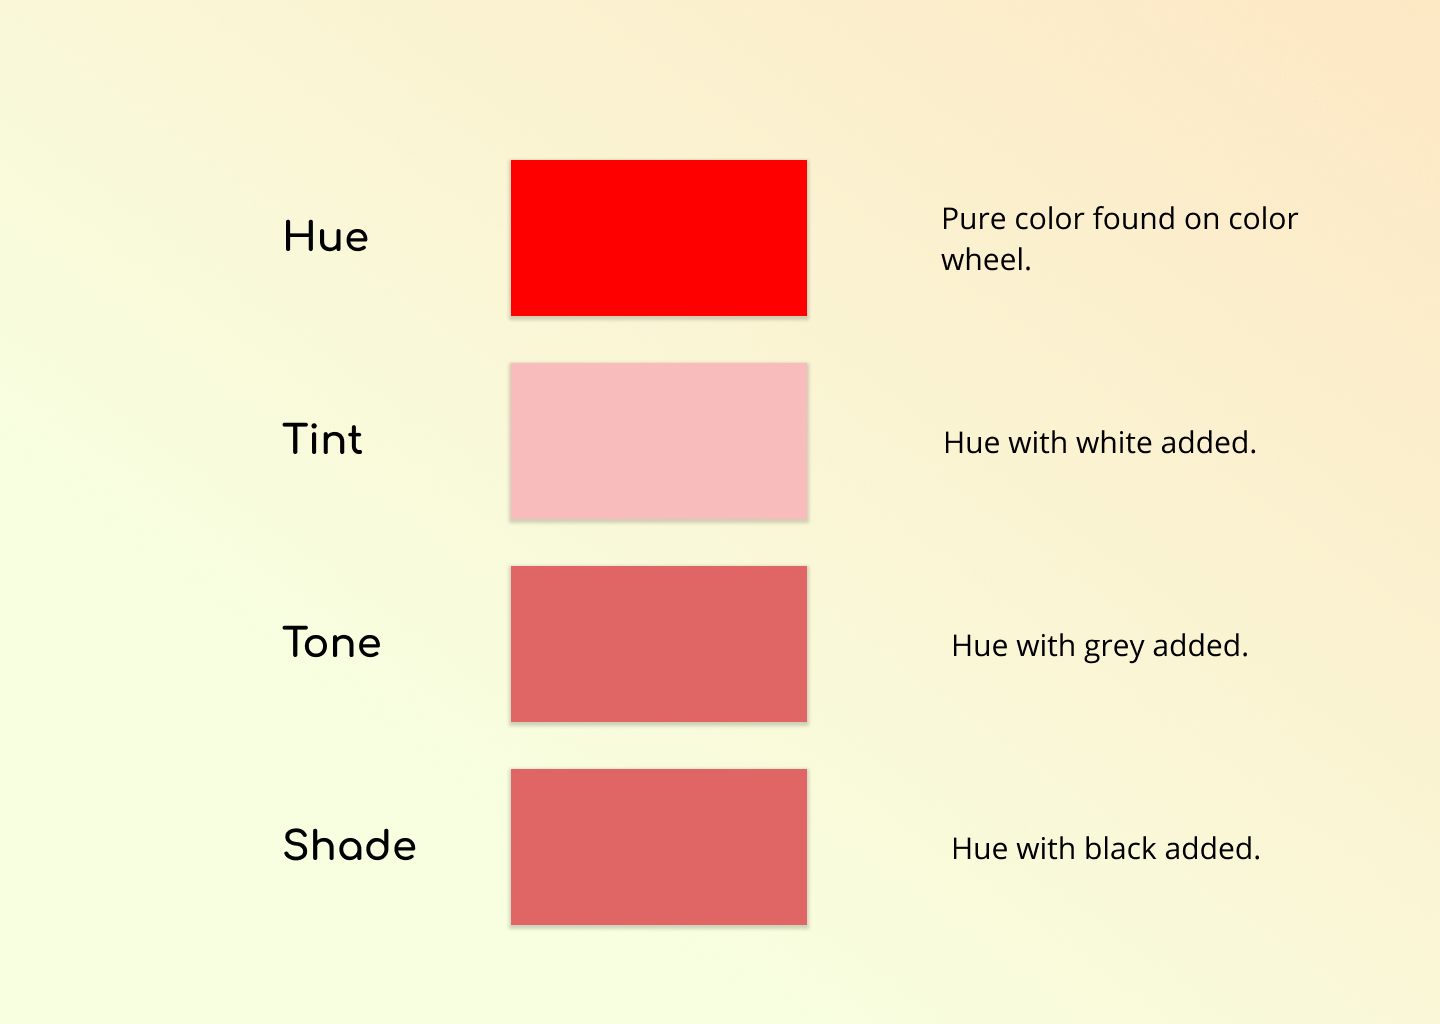 Illustration showing the effects of Hue, Tint, Tone, and Shade on red rectangles. Each rectangle is a slightly different shade of red where tint adds white, tone adds gray and shade adds black.